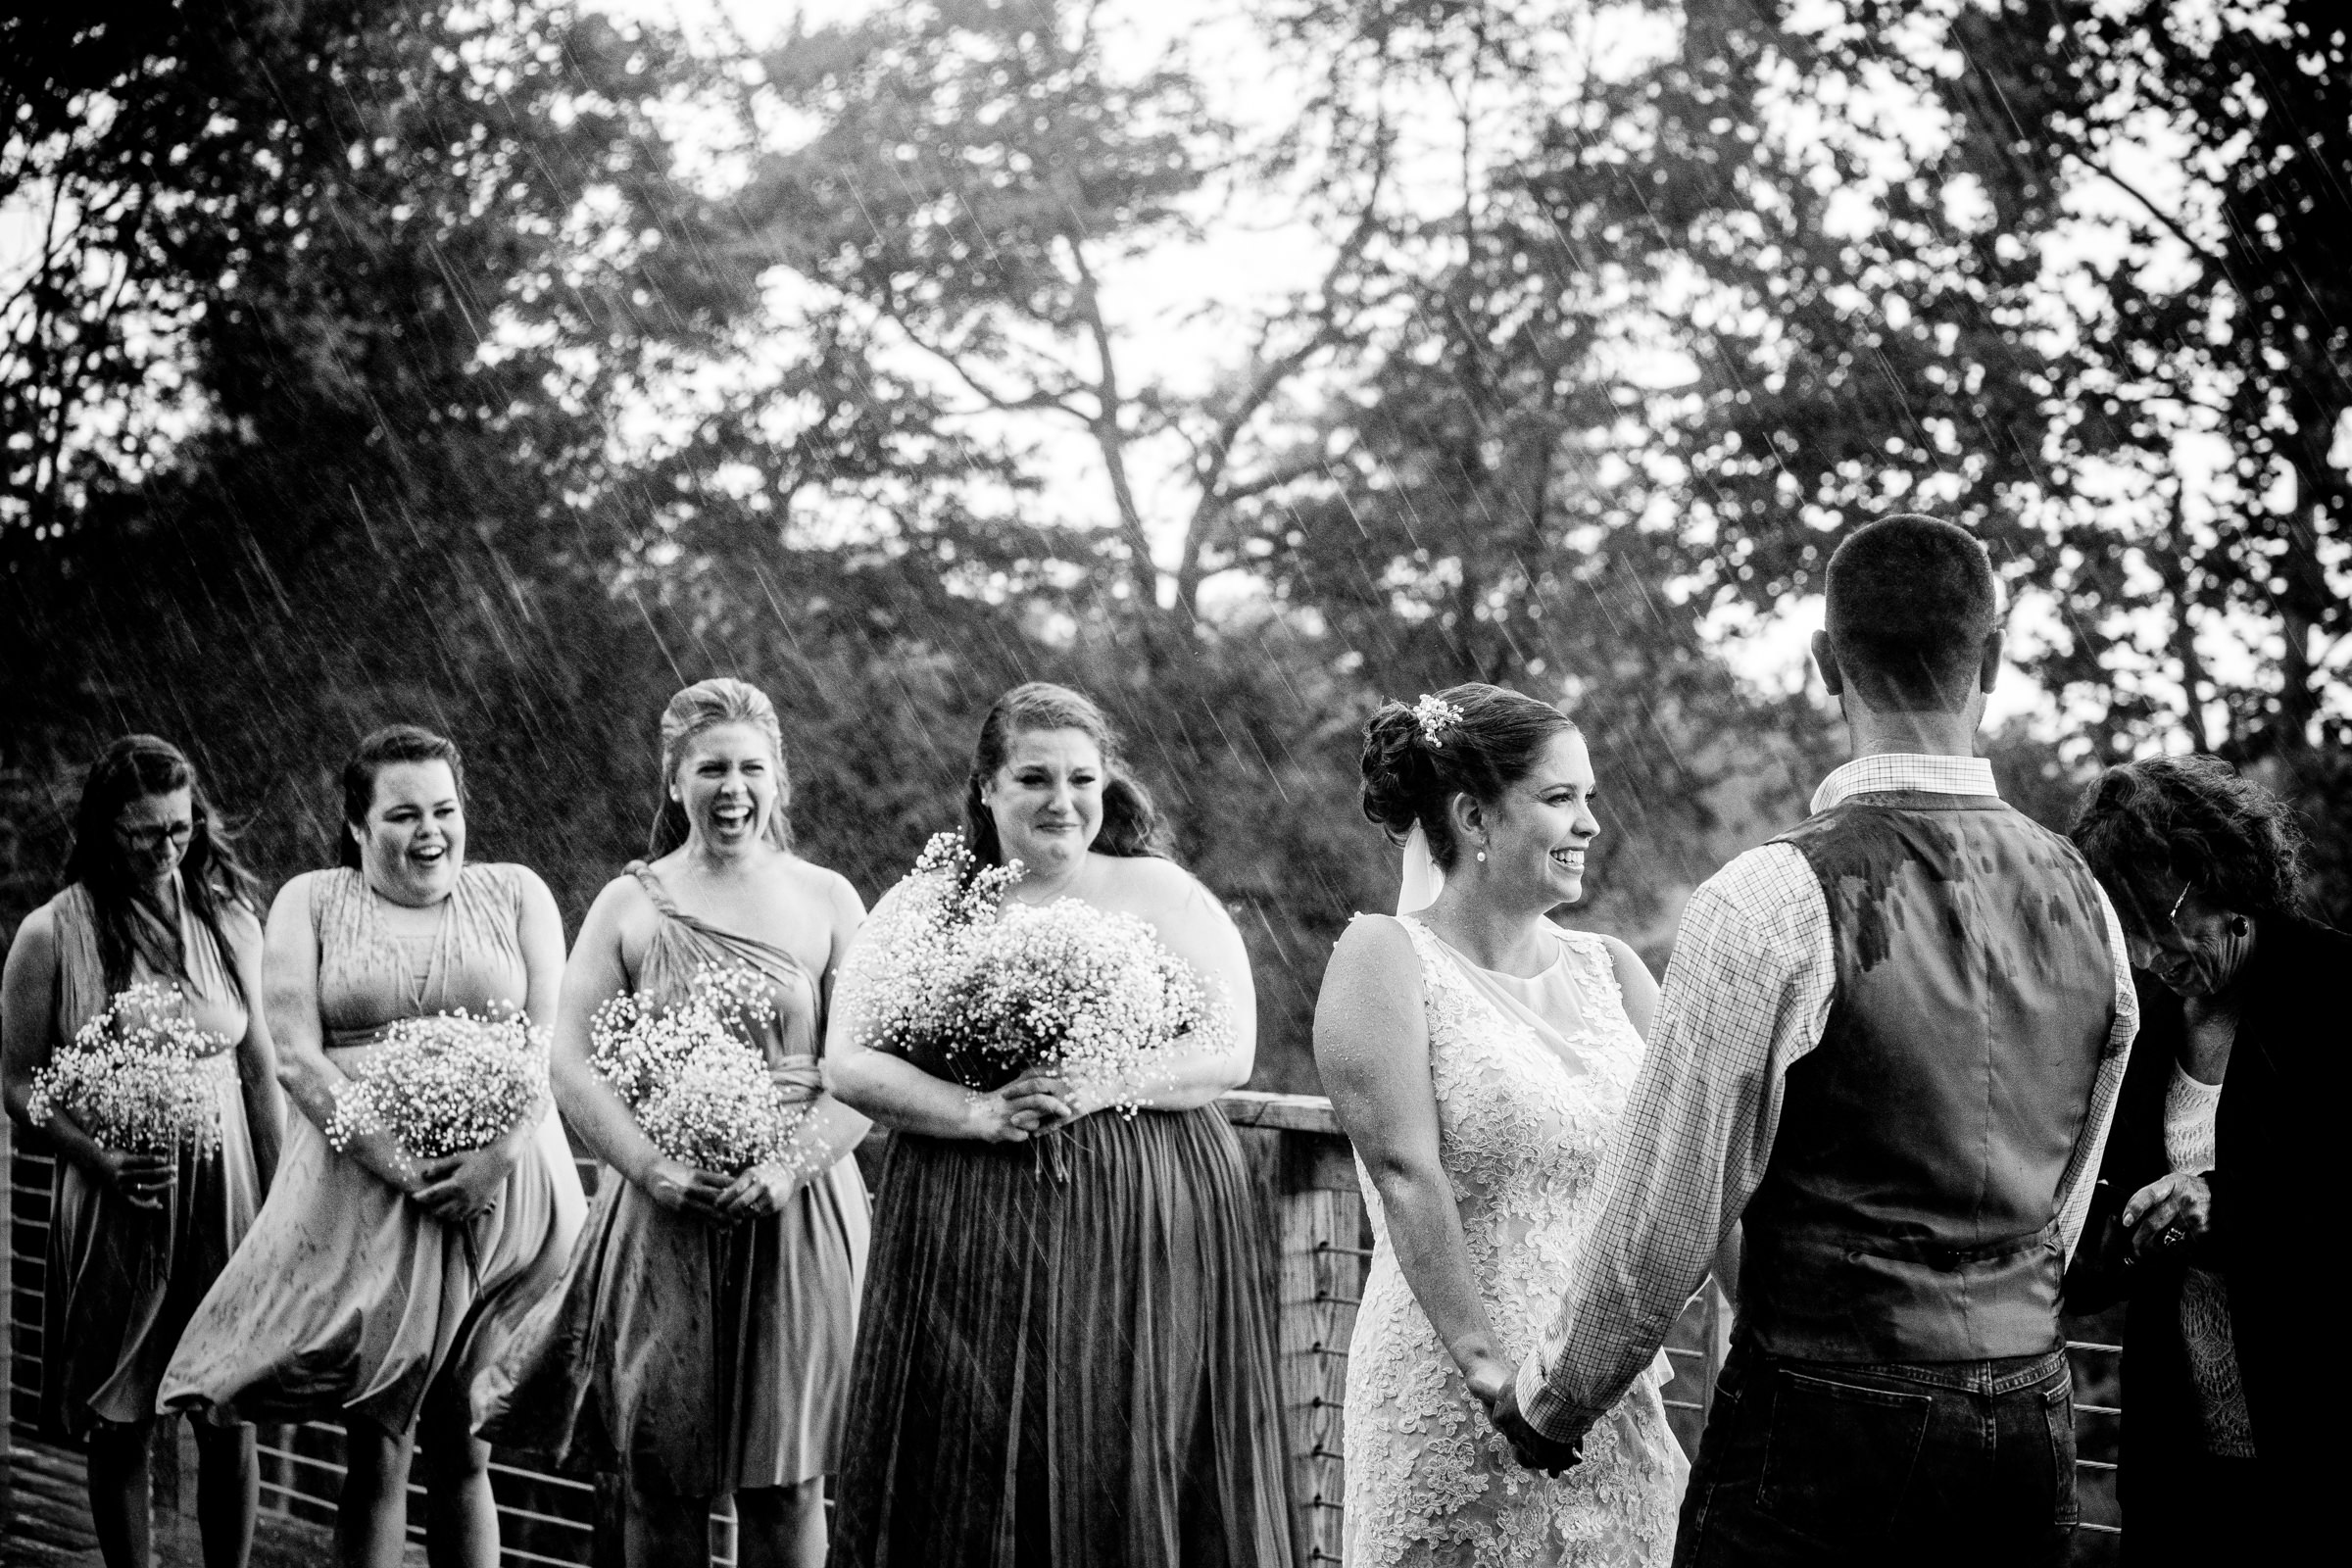 bride-and-bridesmaids-react-to-ceremony-in-the-pouring-rain-photo-by-bee-two-sweet